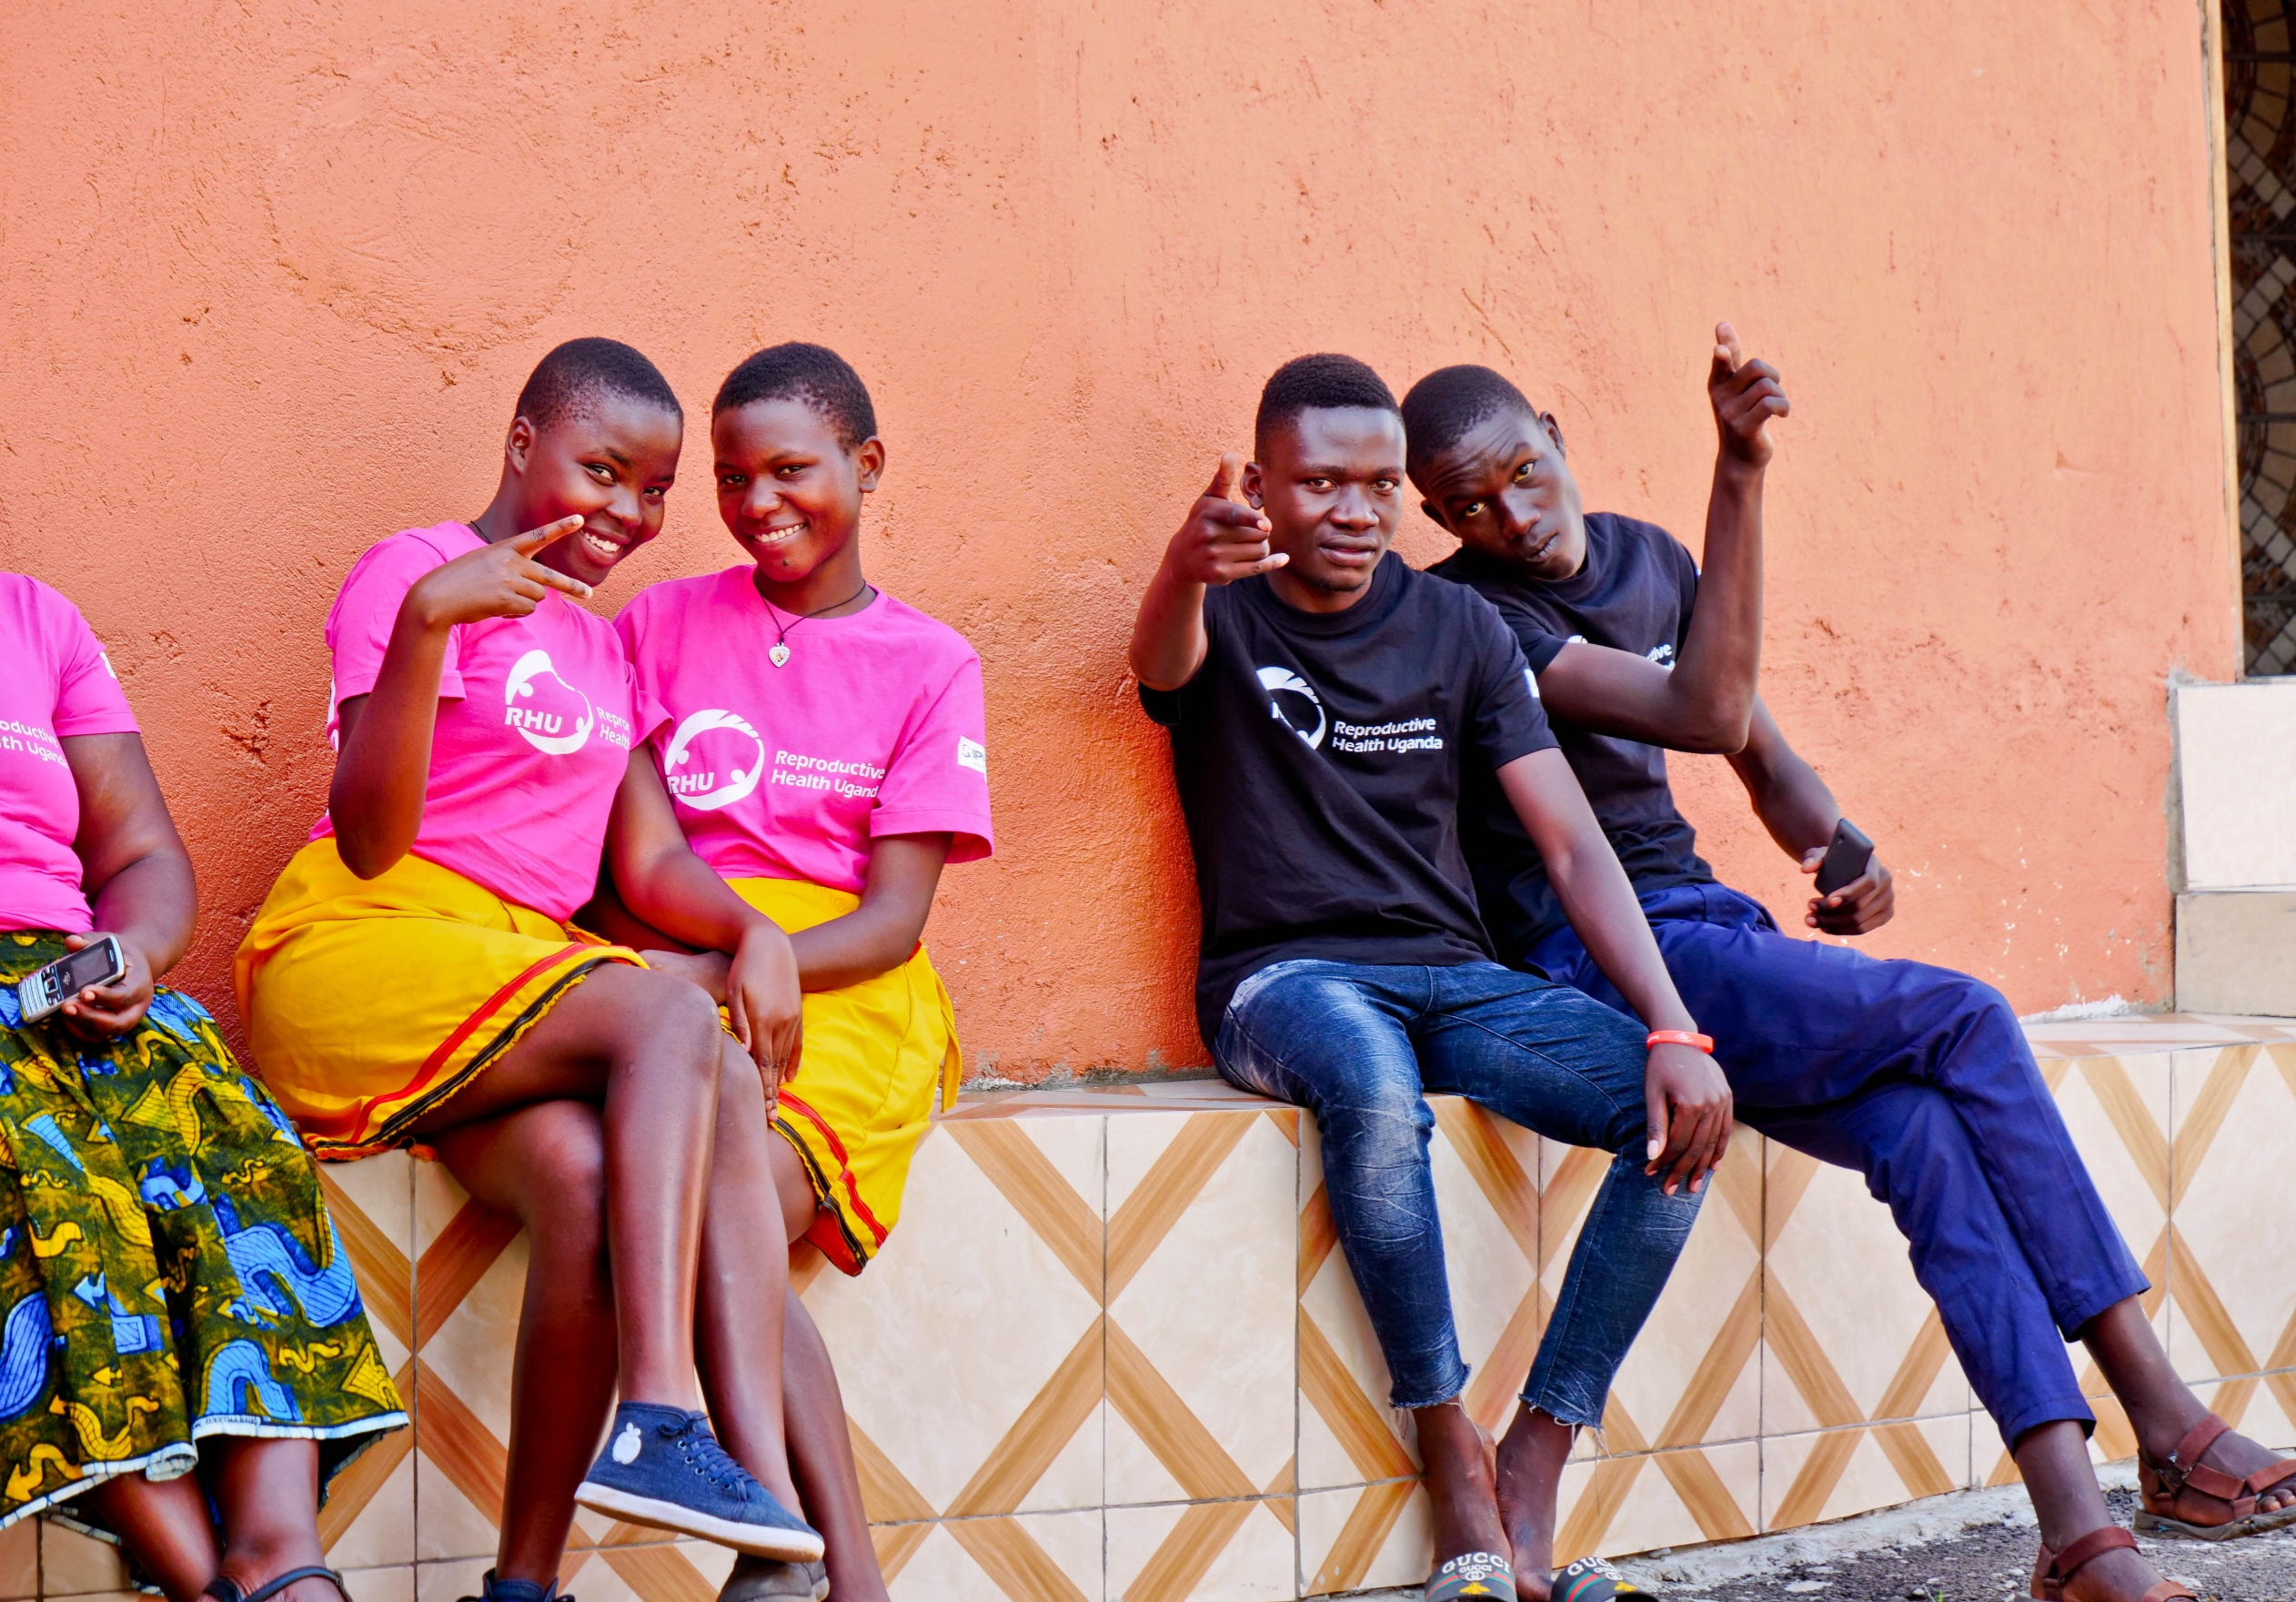 Youth advocating for use of family planning methods